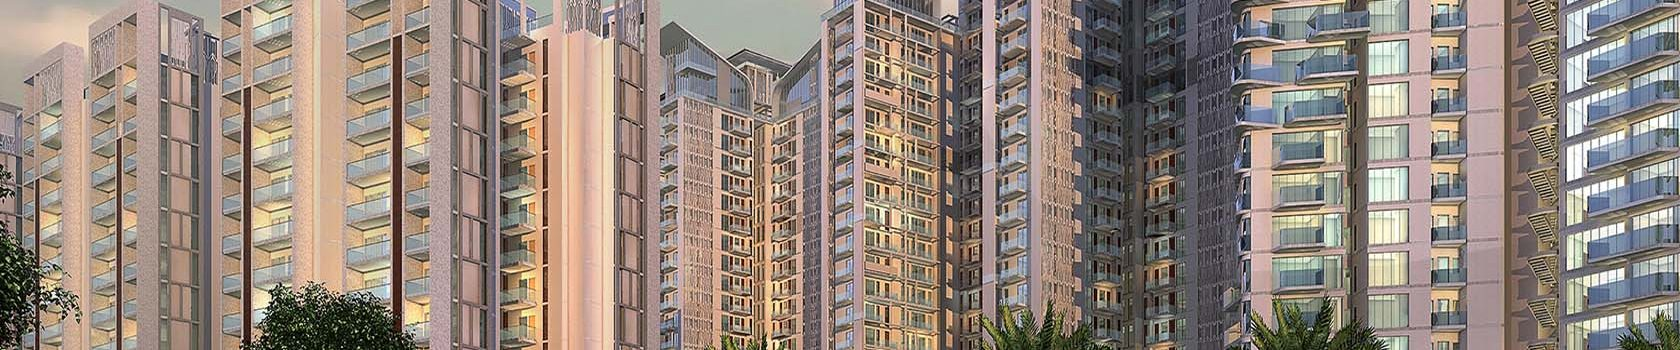 JMS Affordable Housing Project Sector 108 Gurgaon